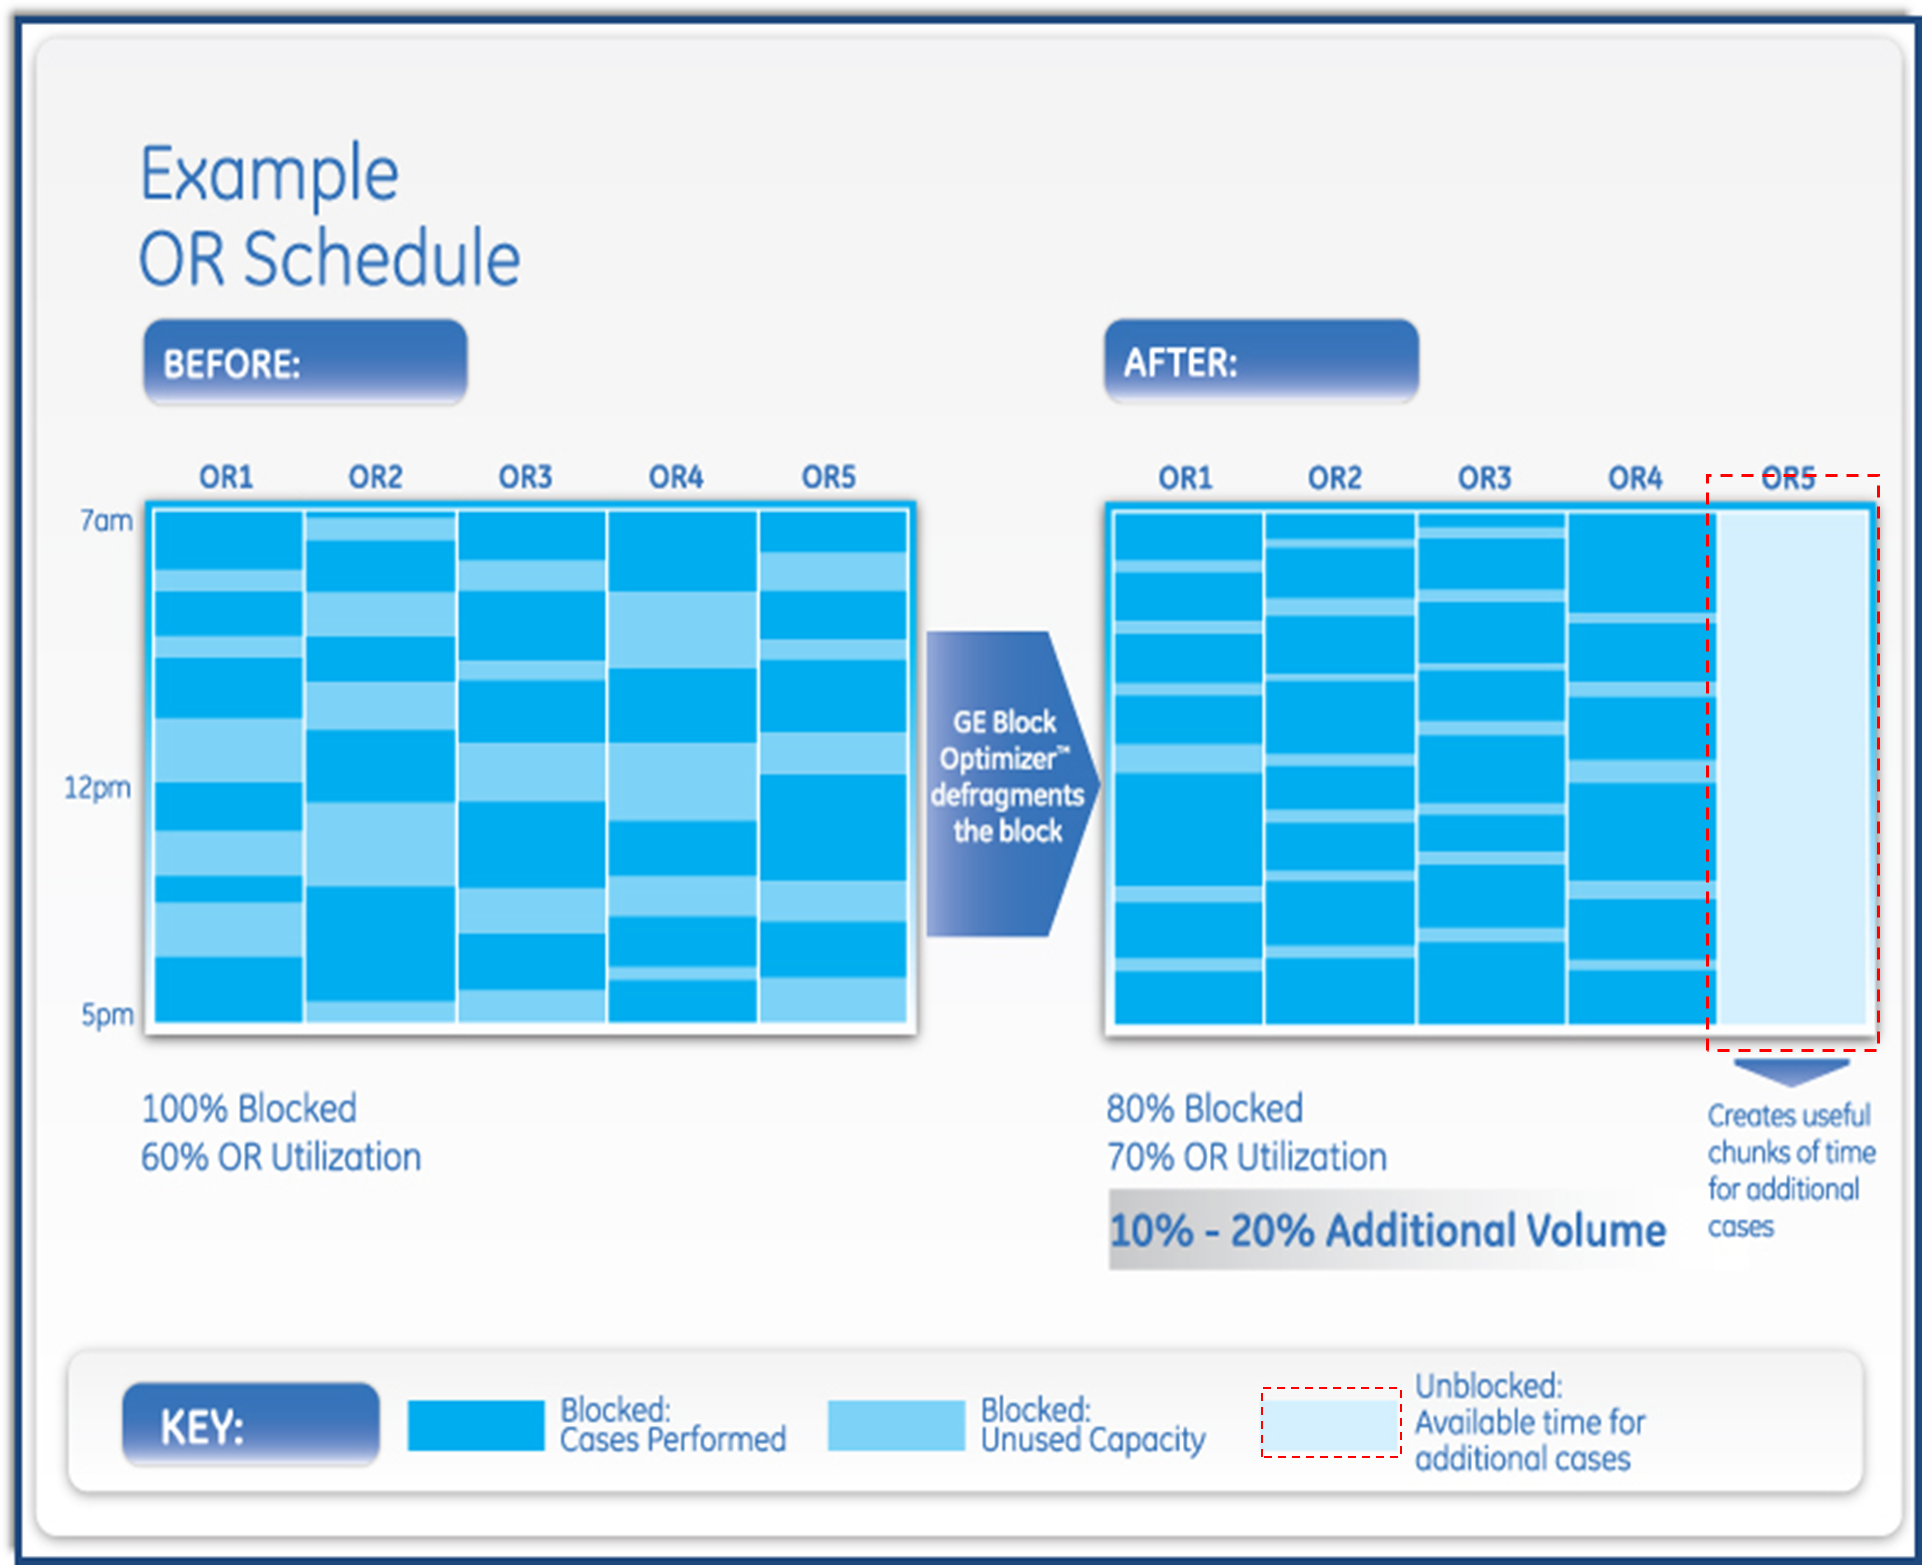 Example_OR_Schedule.png